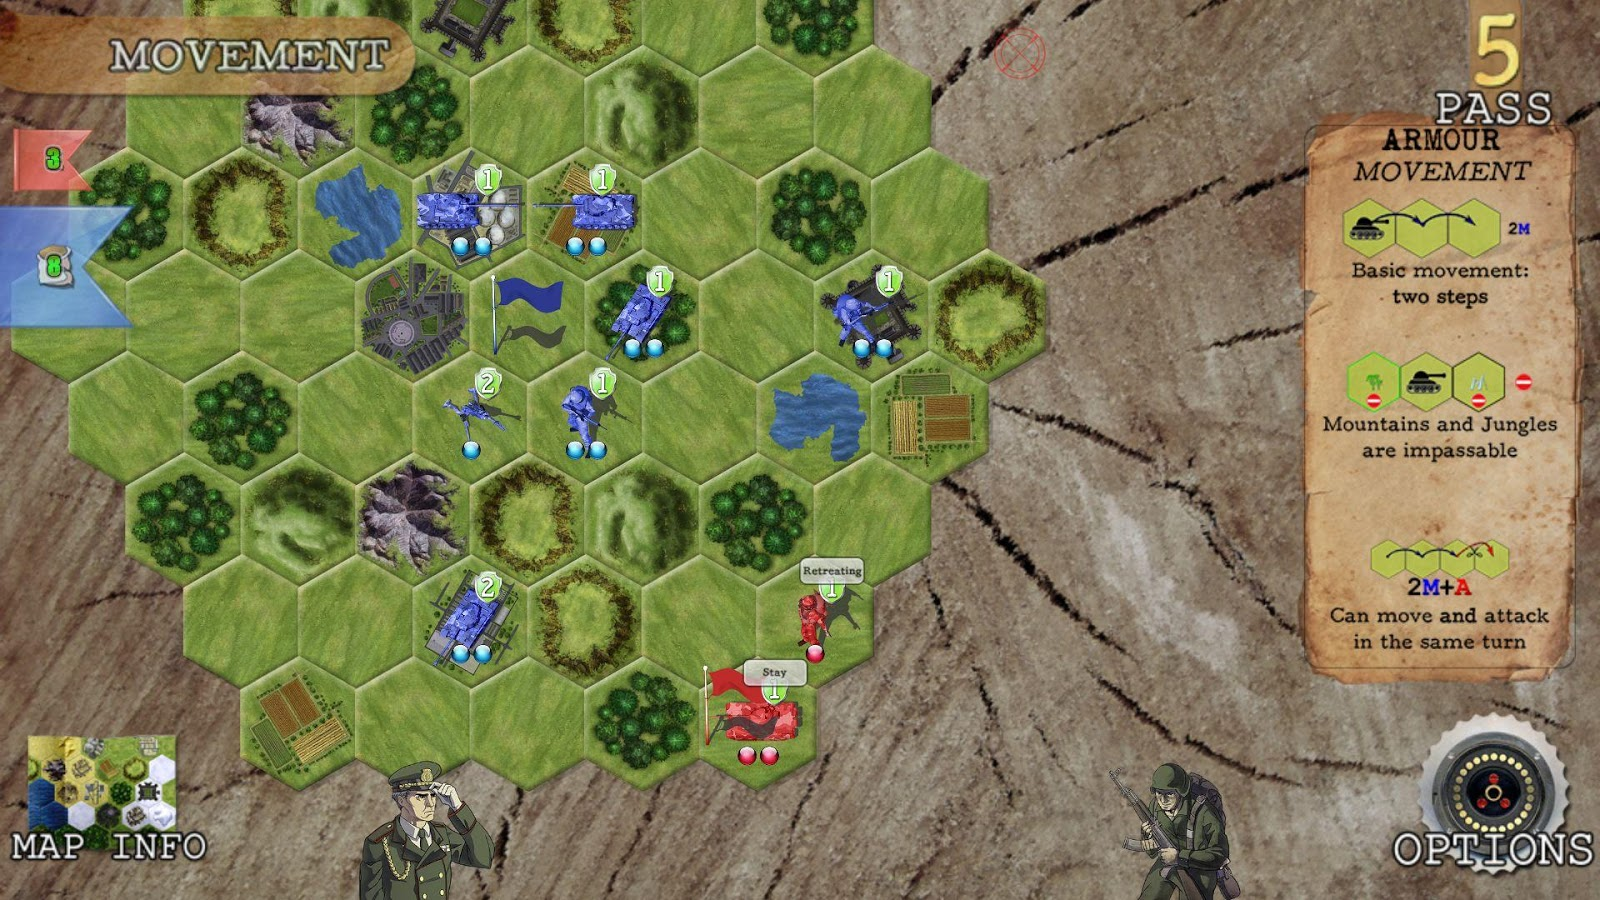 Retaliation Enemy Mine Screenshot 5